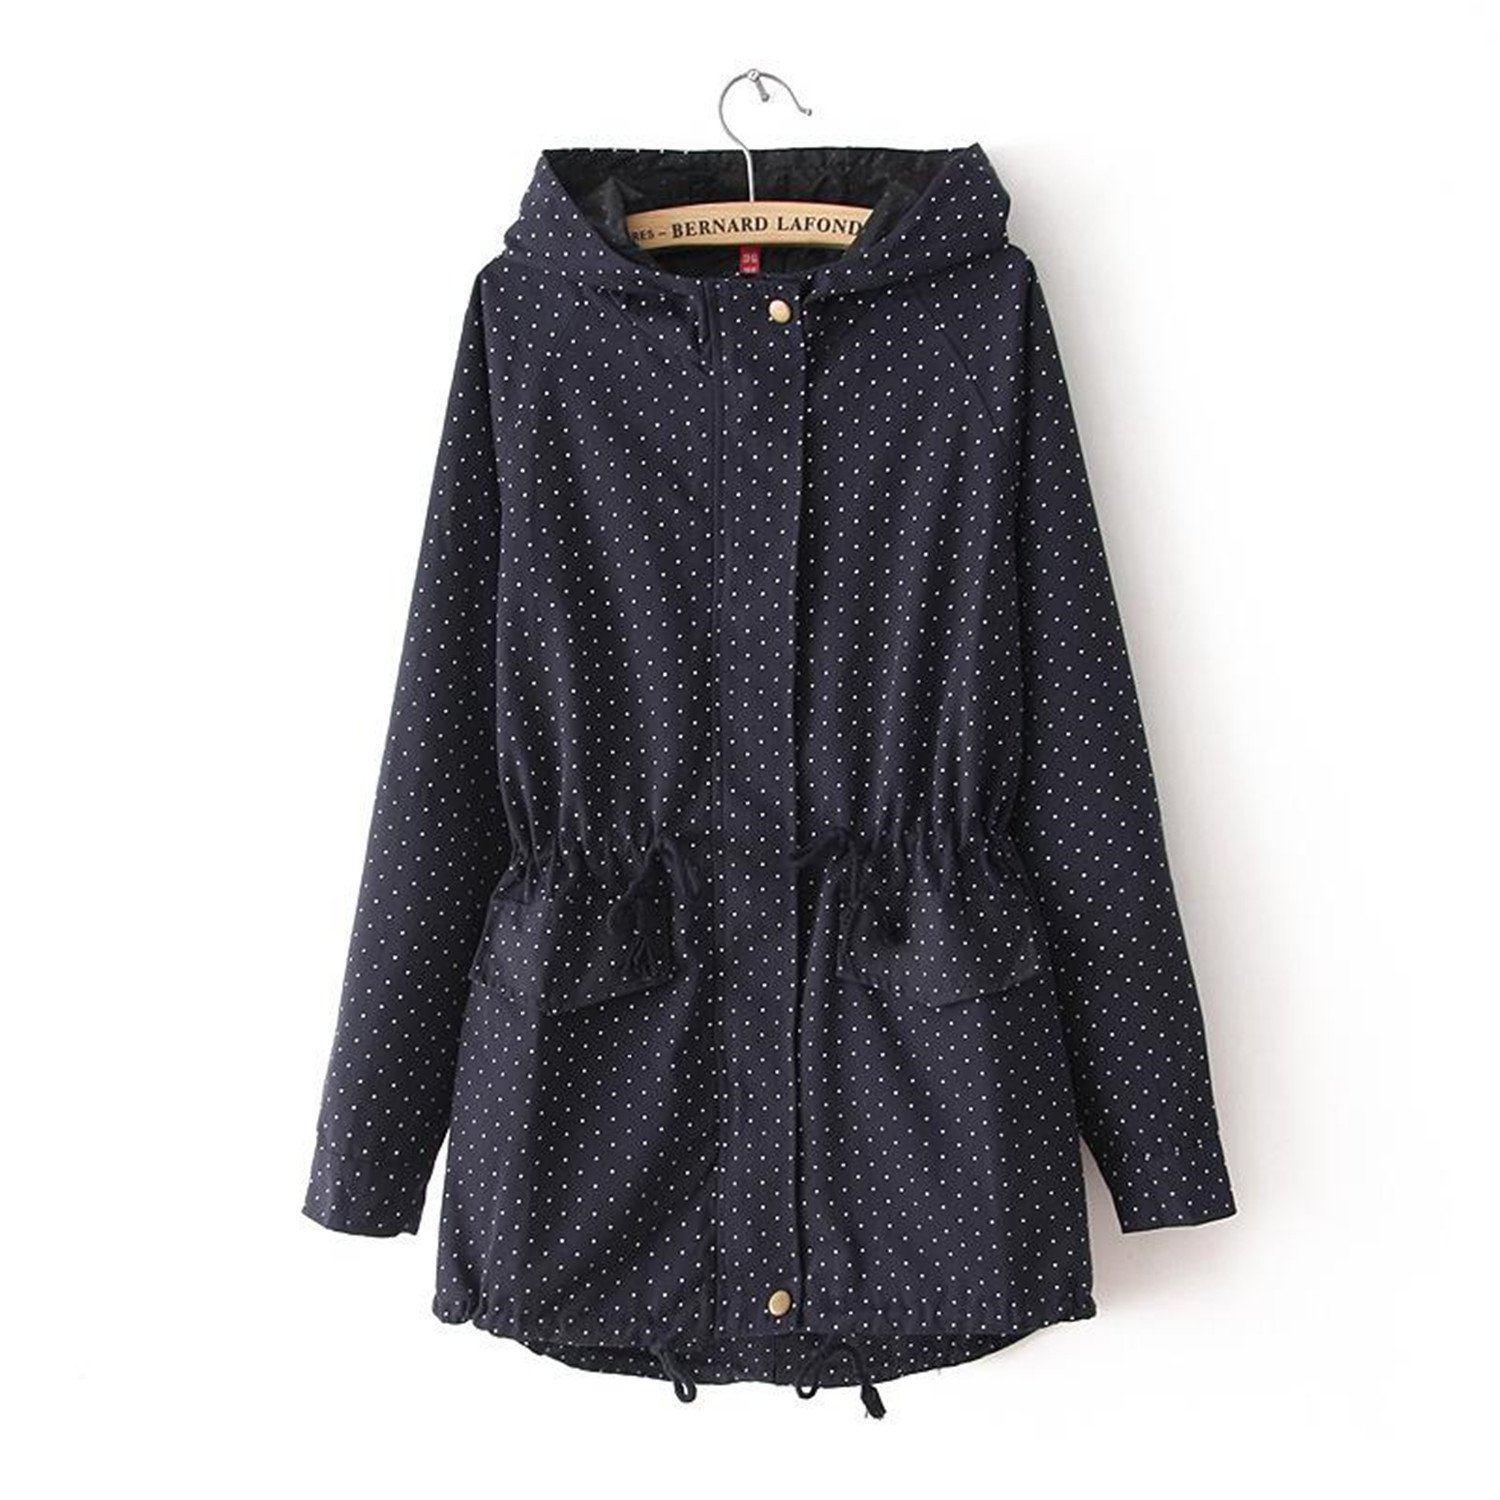 Amazon.com: Ivan Johns Warm 4XL Trench Coat Cute Polka Dots ...